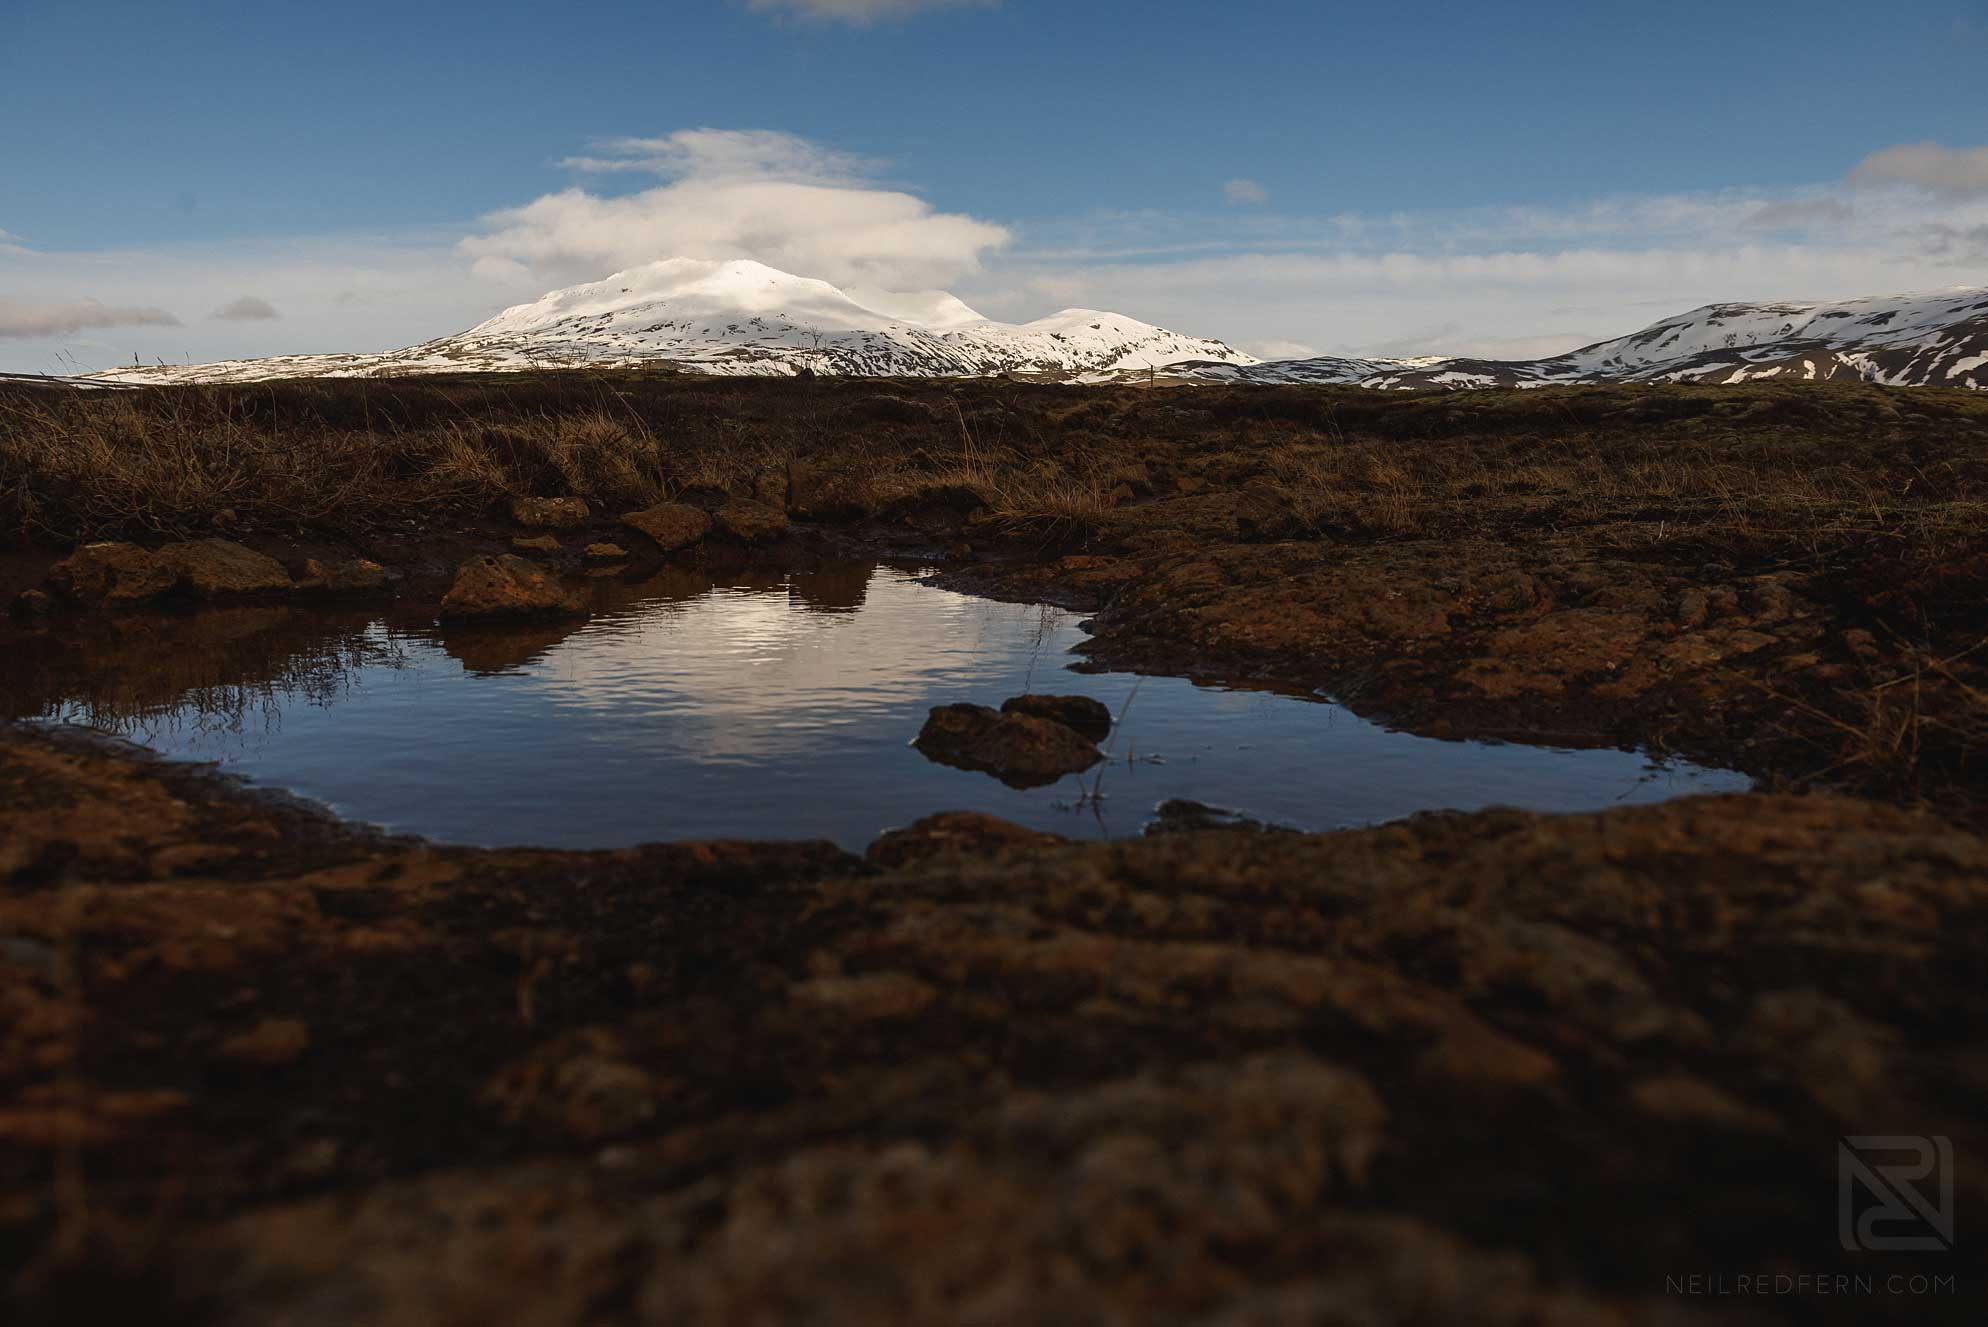 03-Mountain-in-Iceland